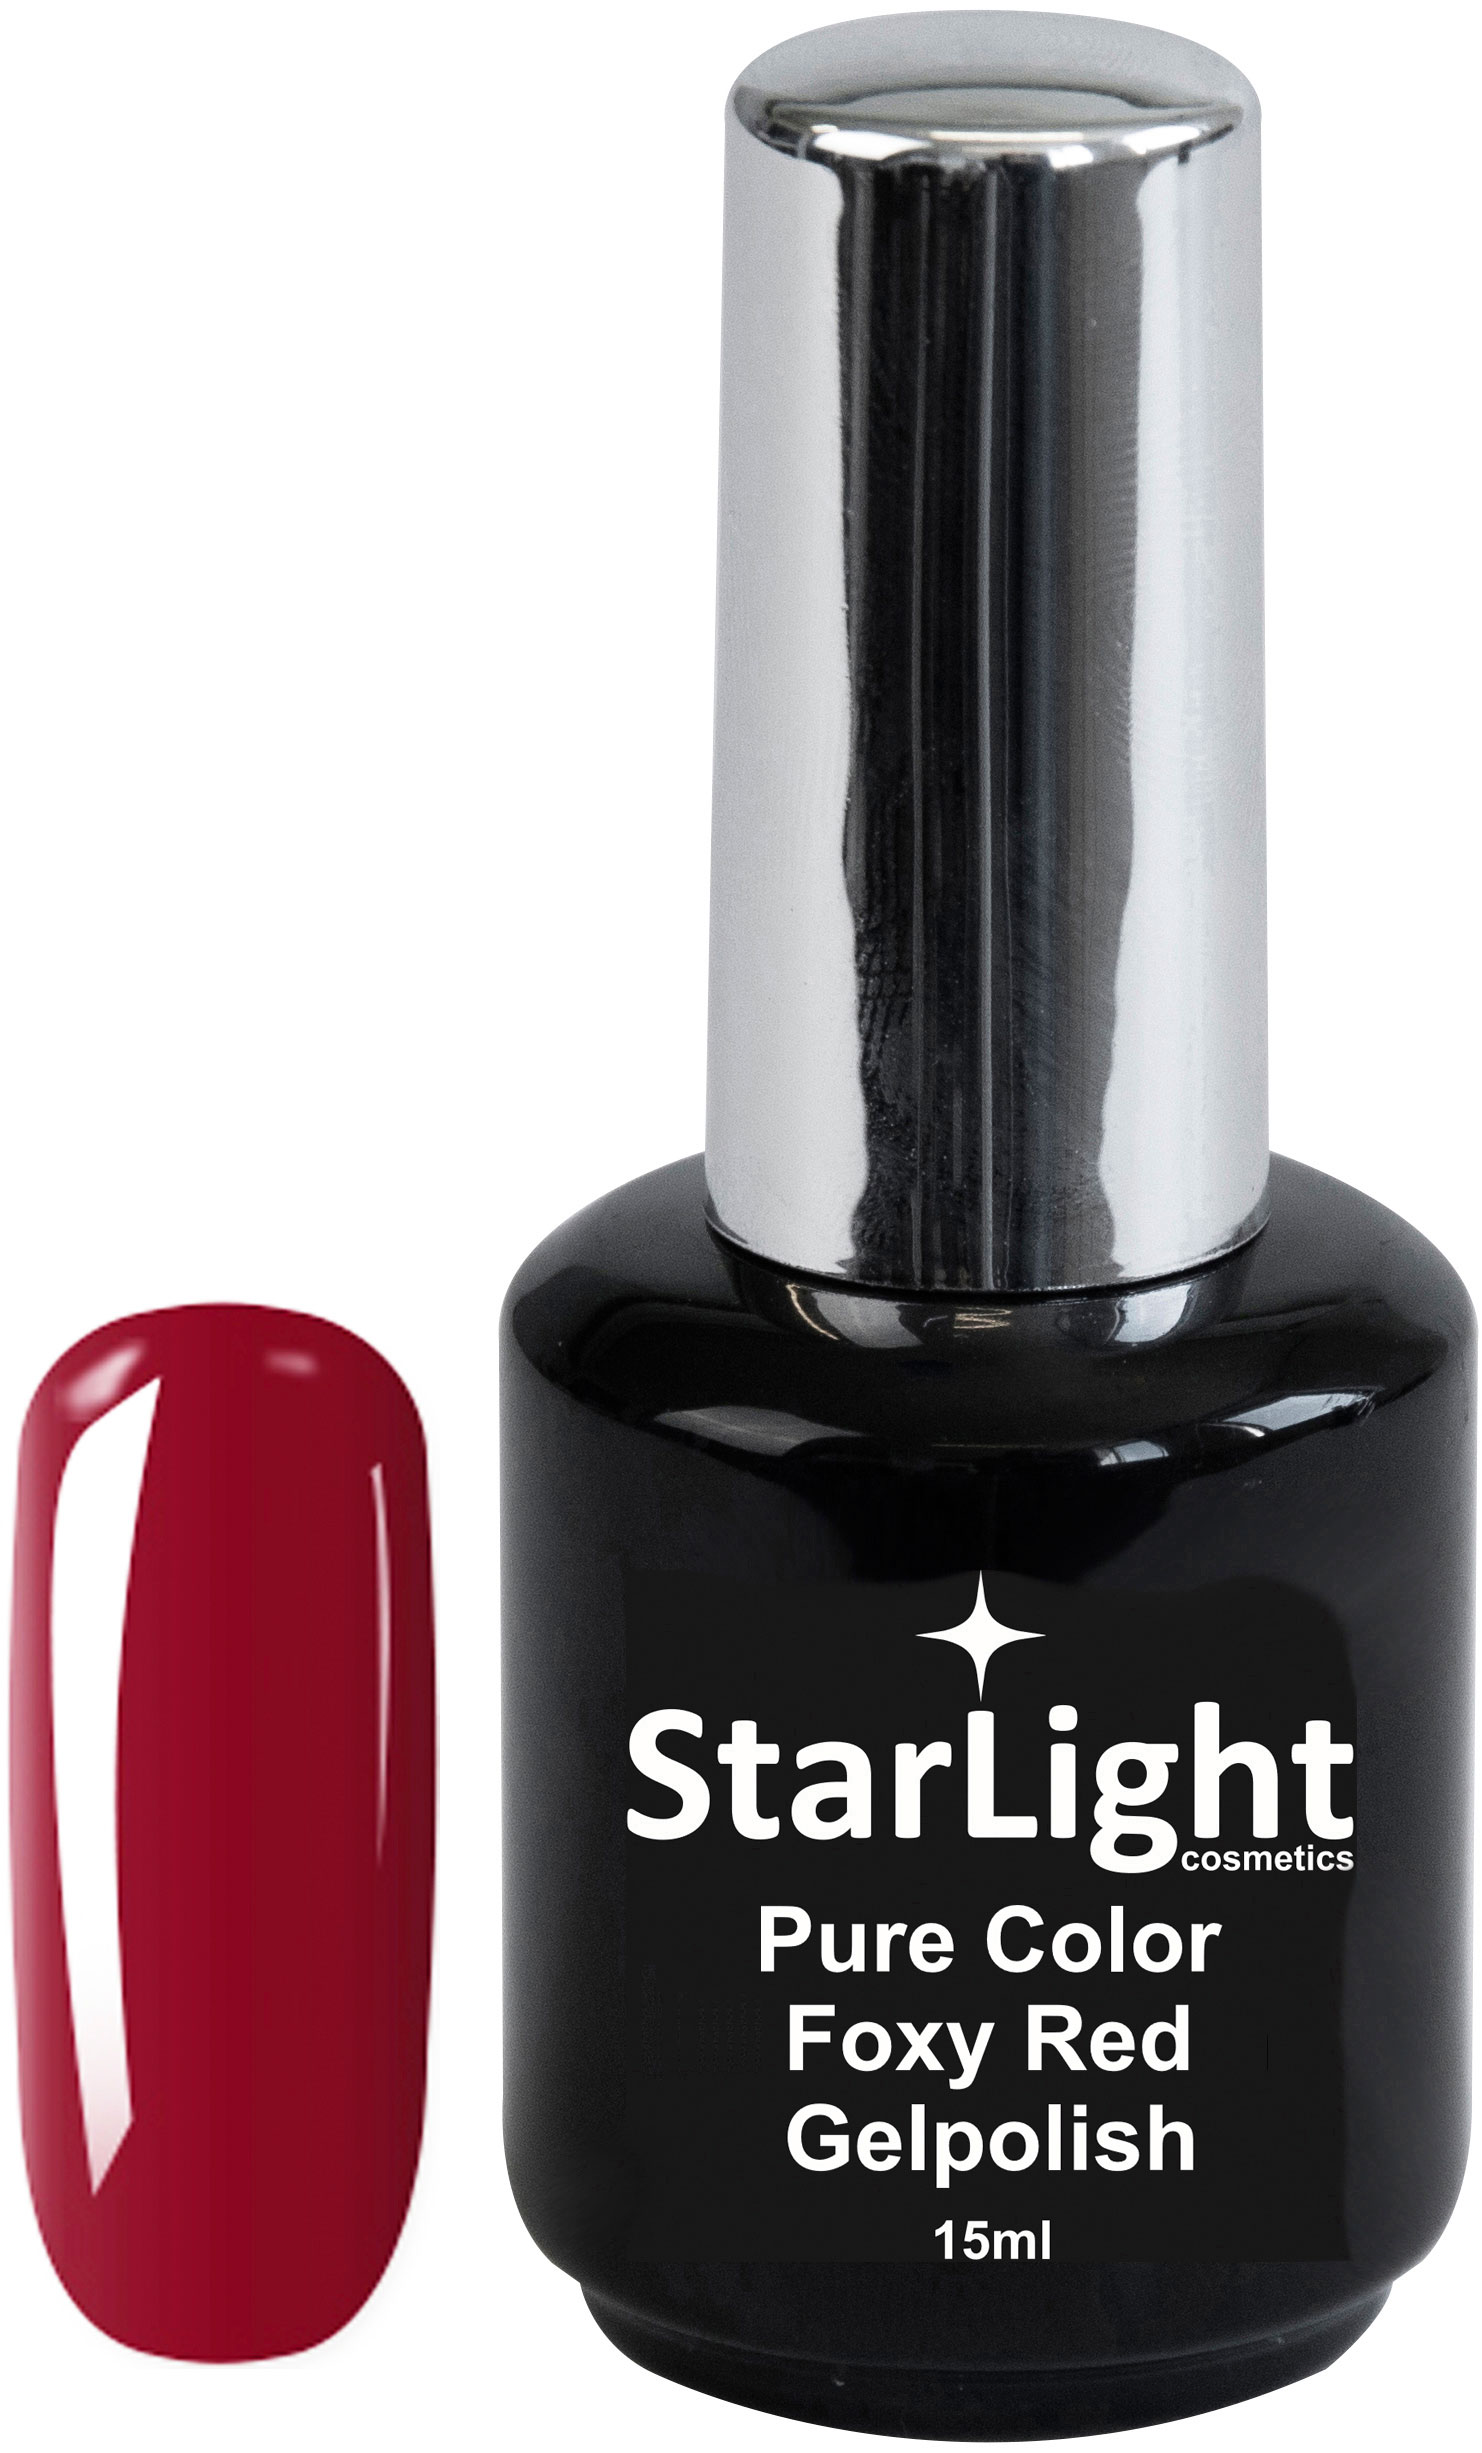 Naglar Gelpolish Pure Color Foxy Red - 15 ml